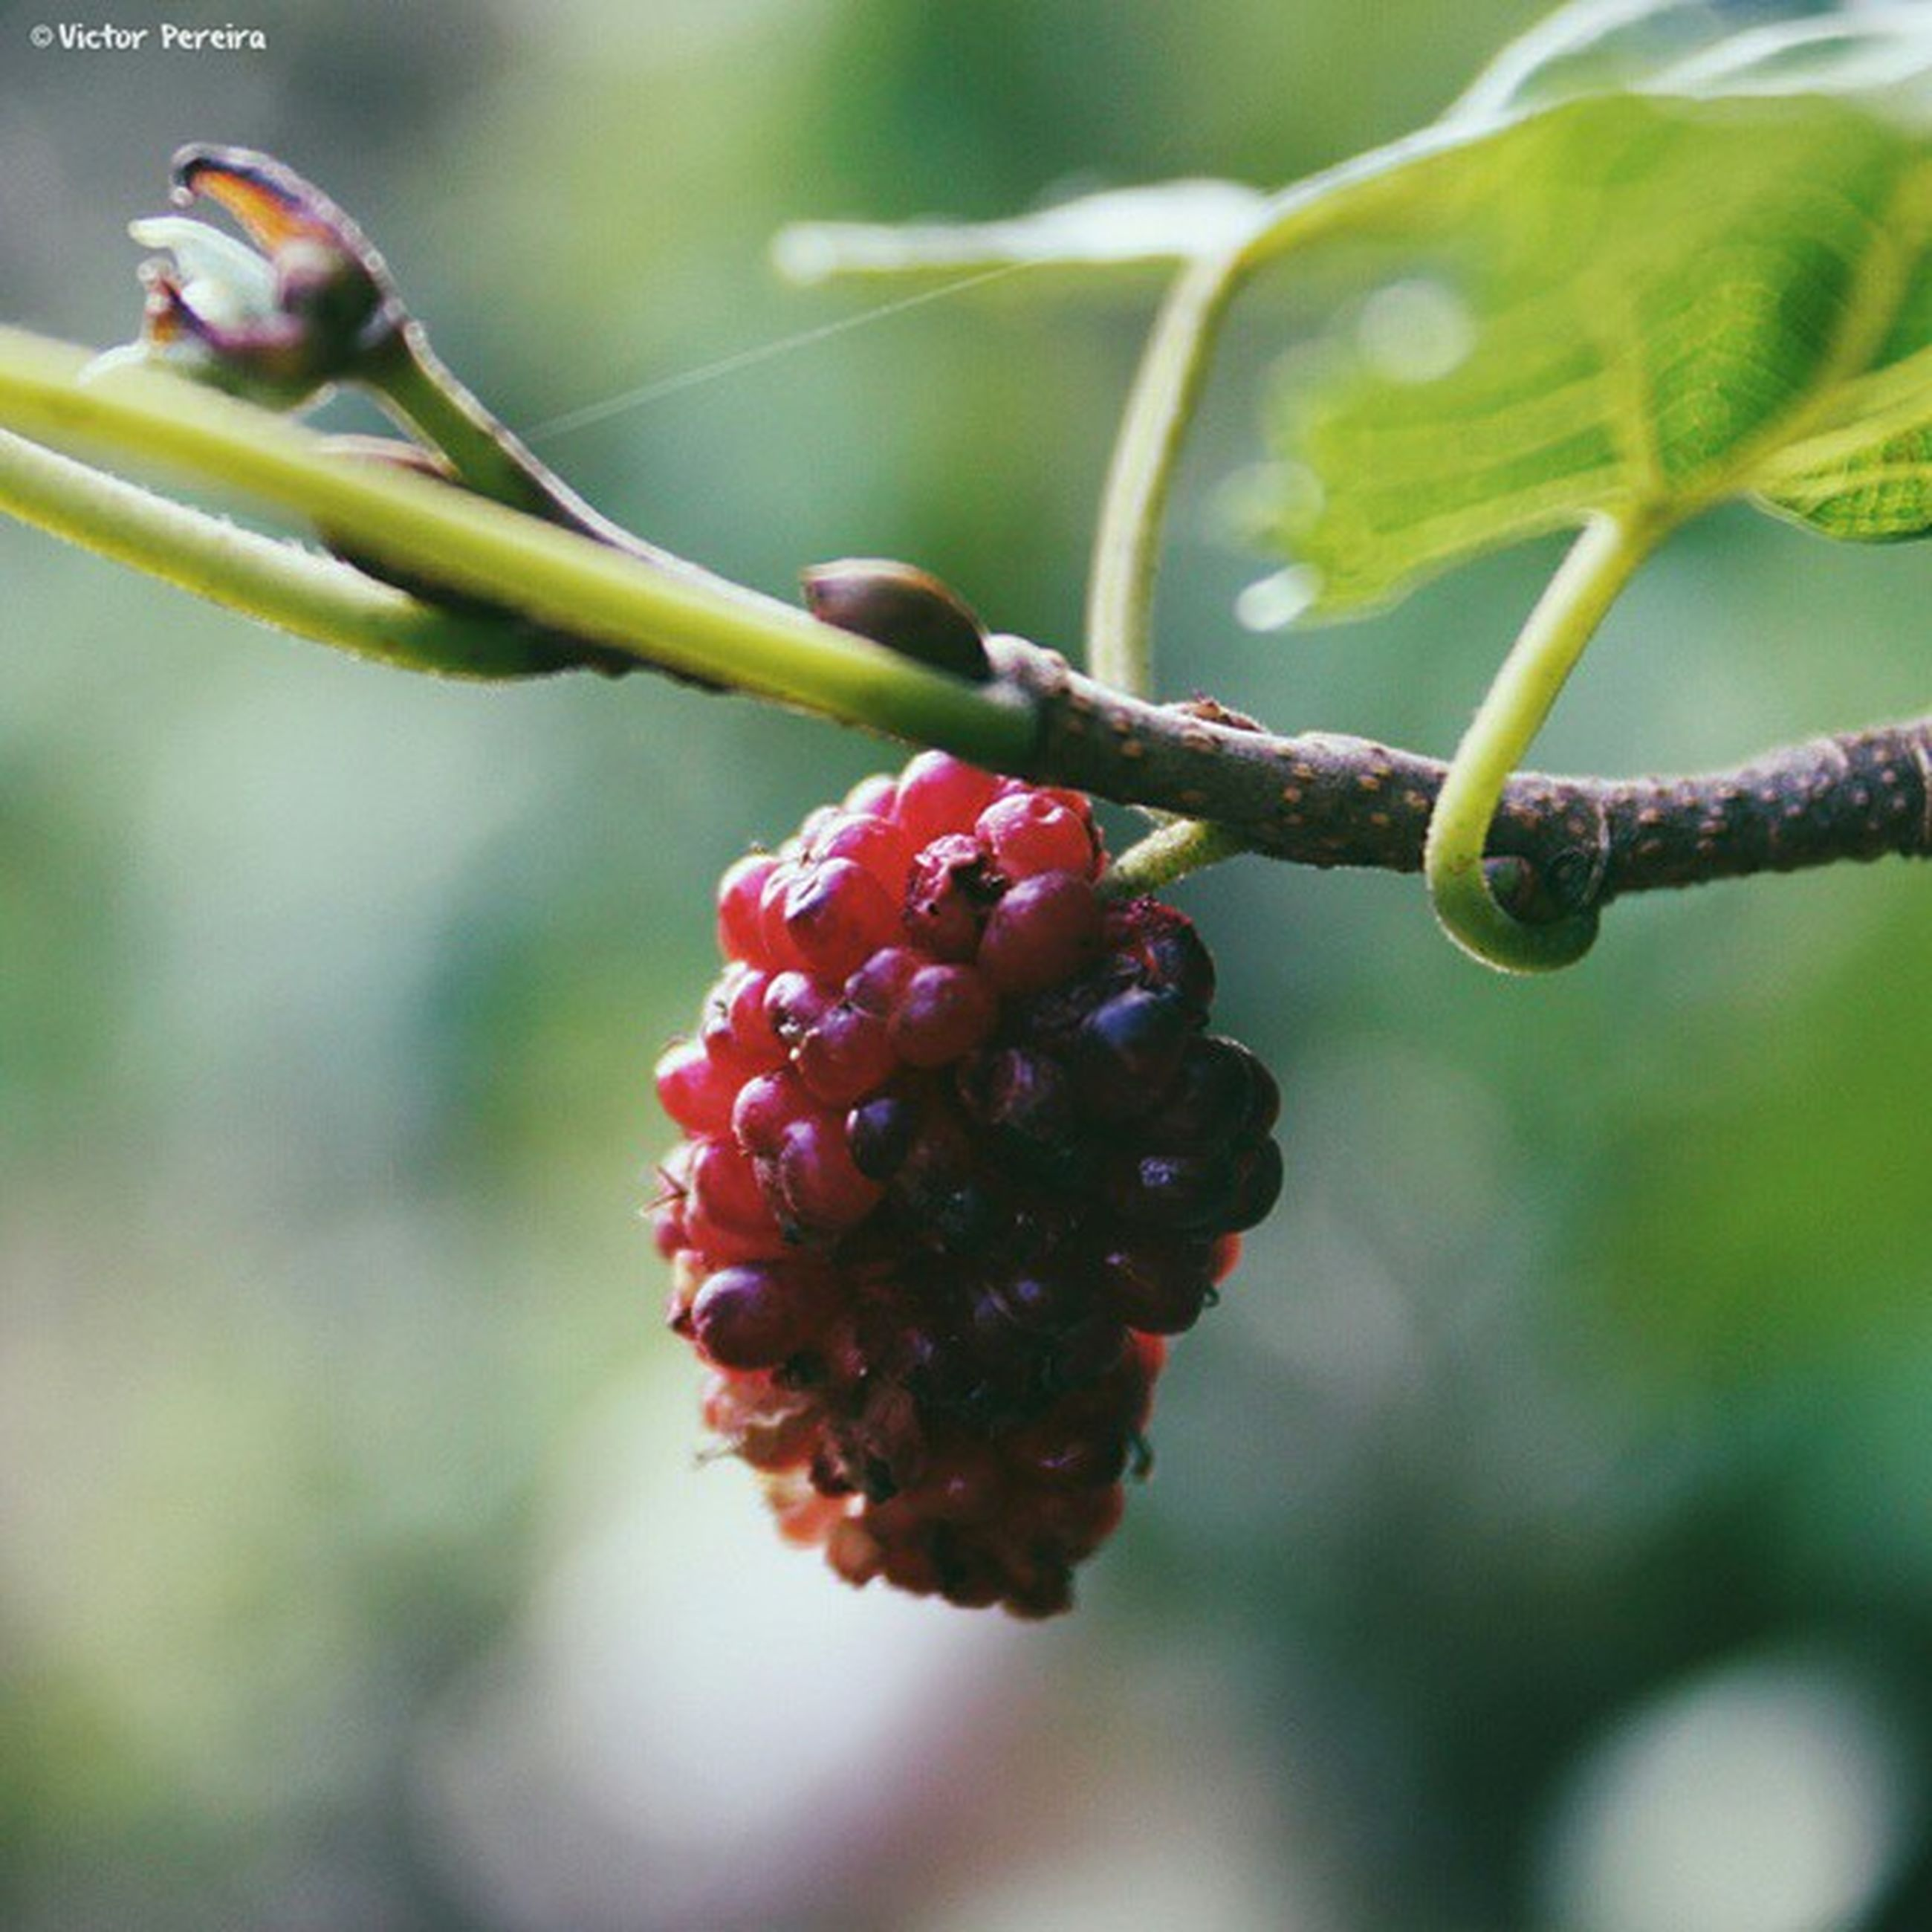 fruit, freshness, growth, food and drink, close-up, berry fruit, food, focus on foreground, berry, healthy eating, red, branch, nature, plant, hanging, leaf, ripe, bud, beauty in nature, tree